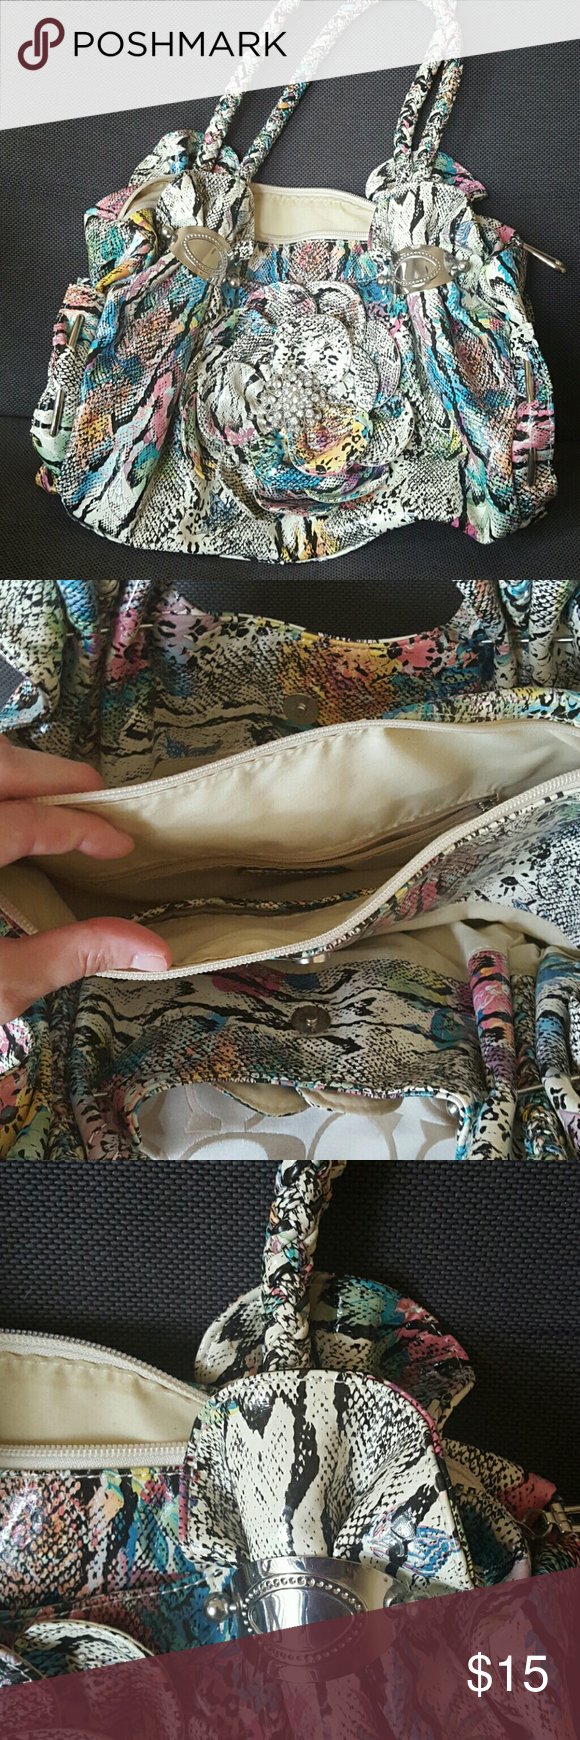 Malti colored purse Large flower on front with gems, front and back pockets, zipper pocket inside, outside zip, and 2 inside pockets open inside gently used *perfect condition* Charming Charlie Bags Shoulder Bags